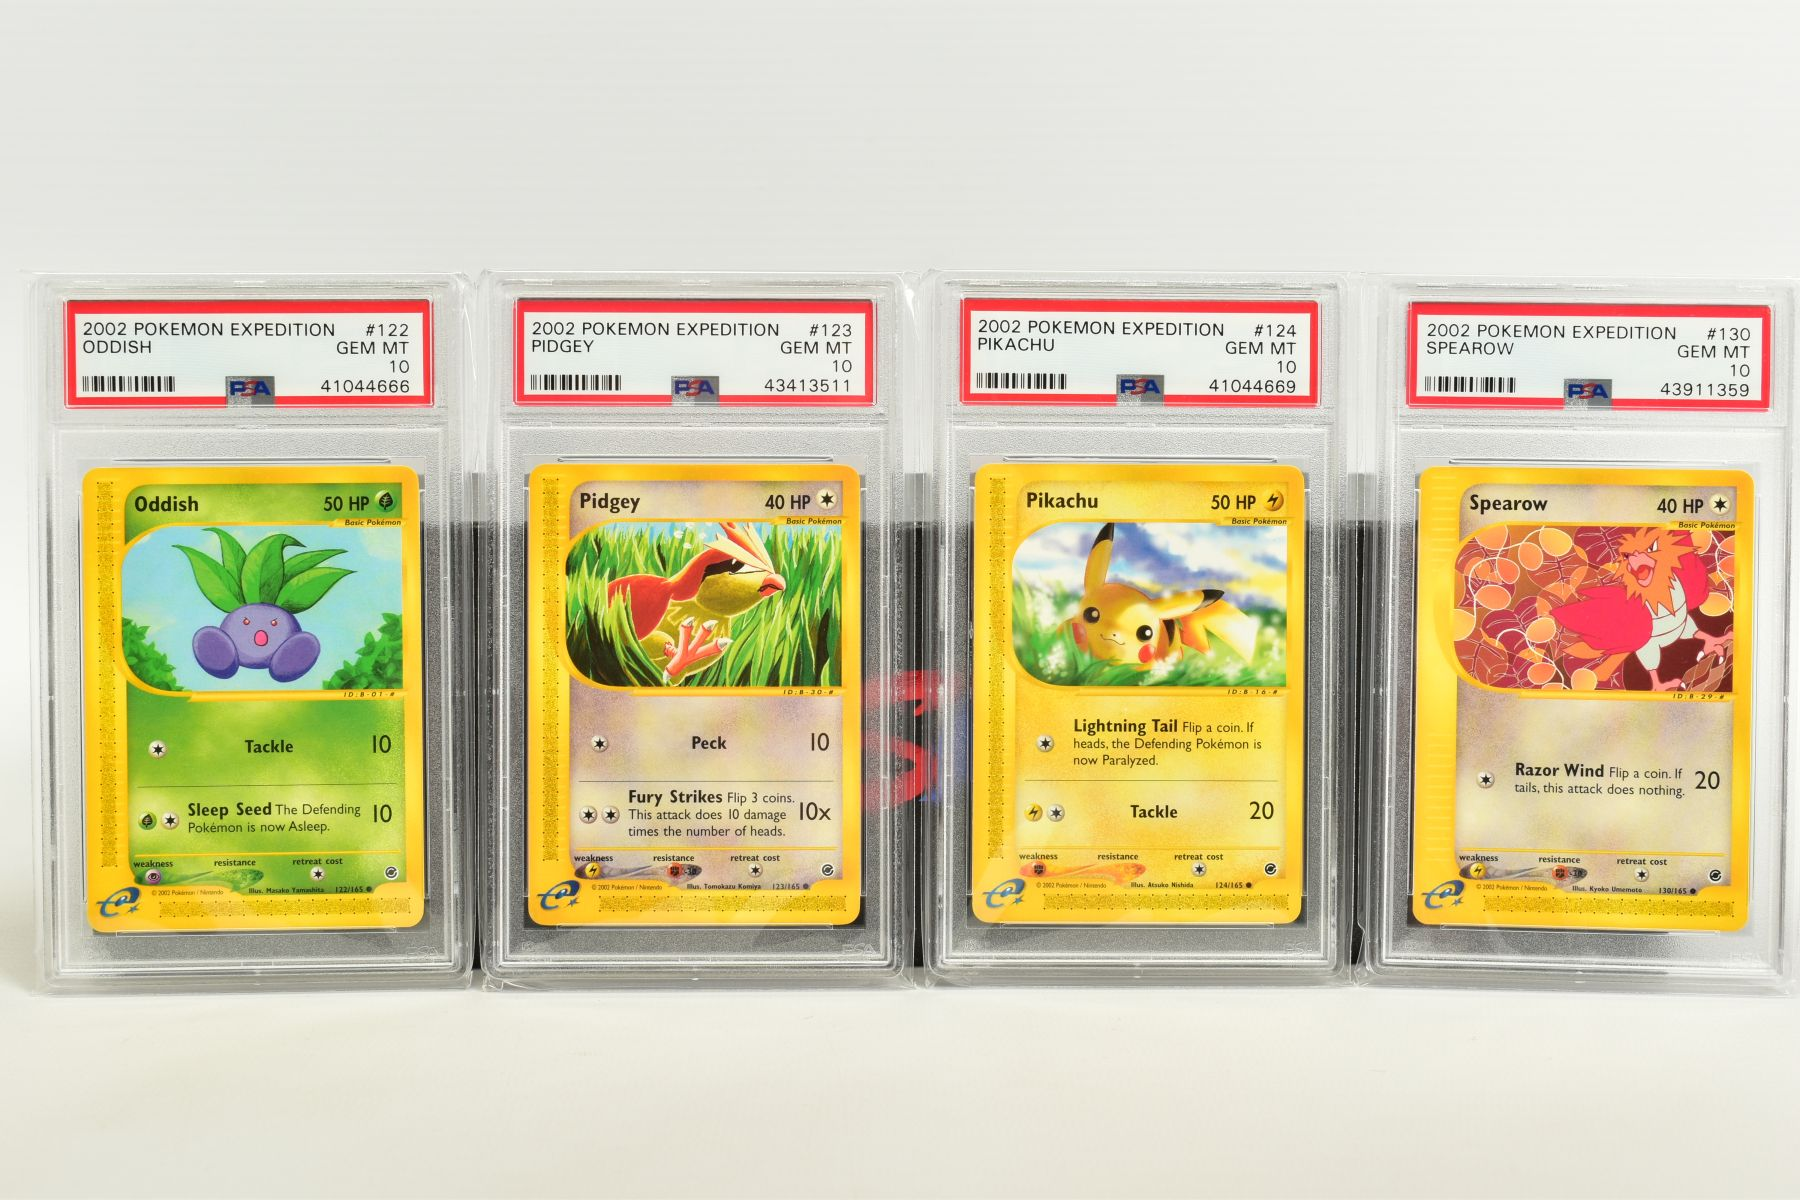 A QUANTITY OF PSA GRADED POKEMON E CARD EXPEDITION BASE SET CARDS, all are graded GEM MINT 10 and - Image 8 of 12